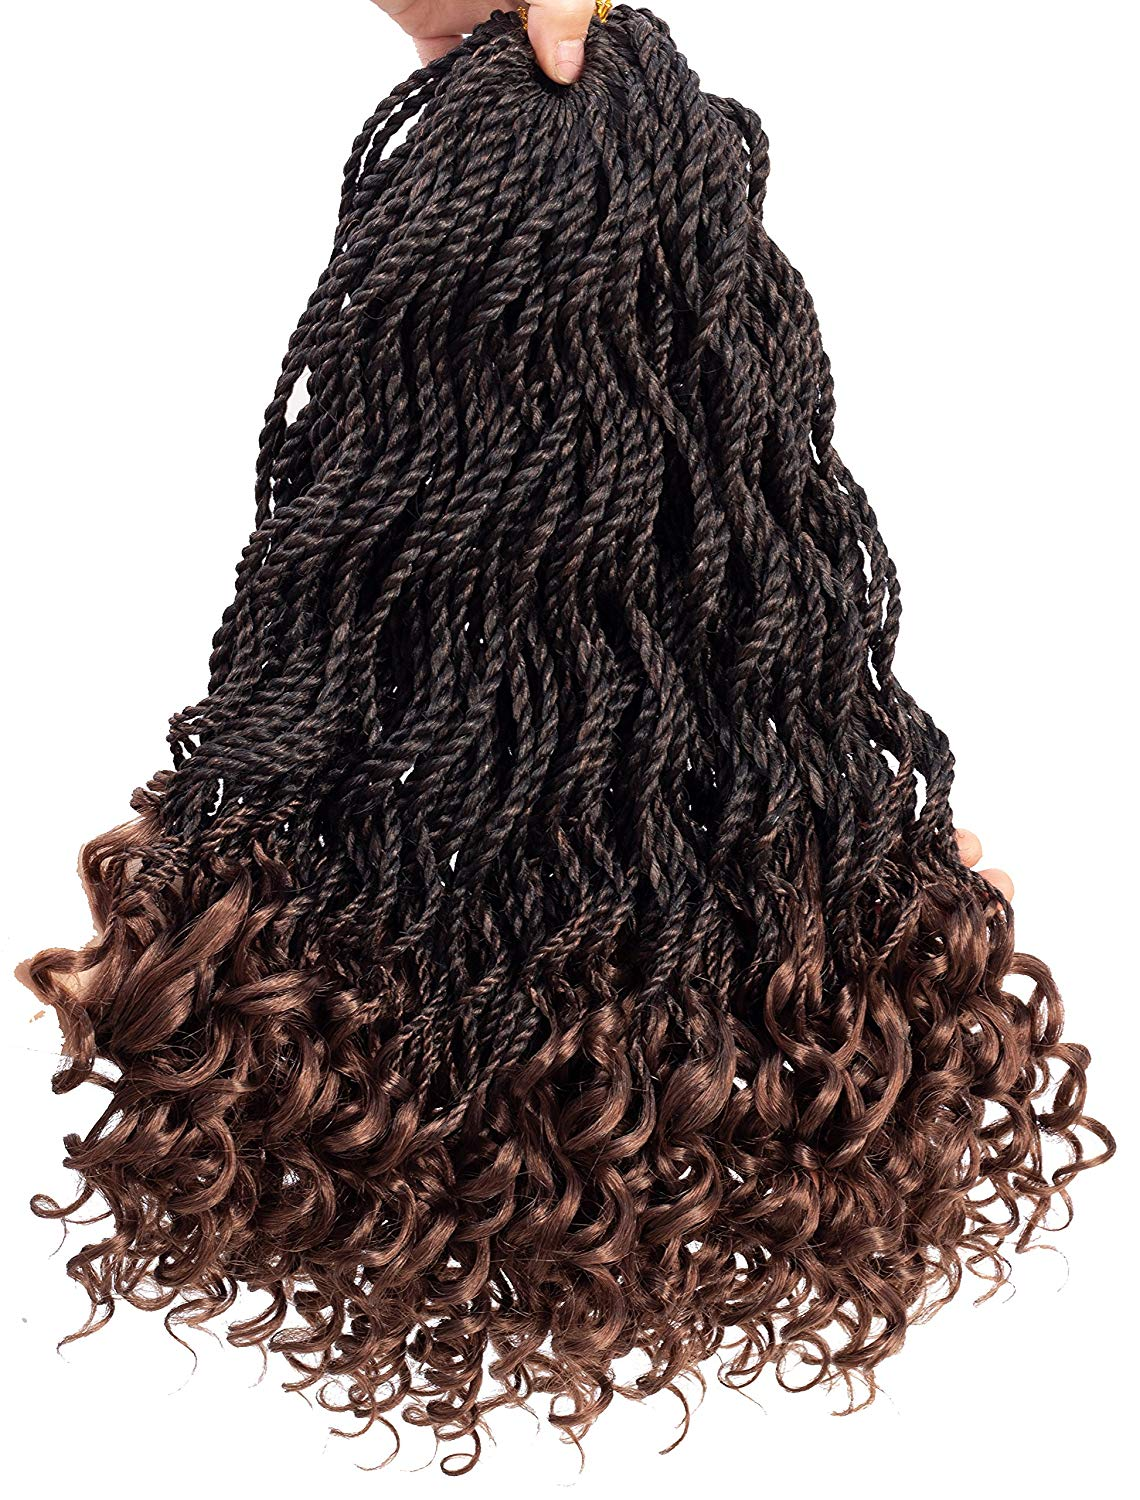 Senegalese Twist Crochet Hair Wave Curly Synthetic Braiding